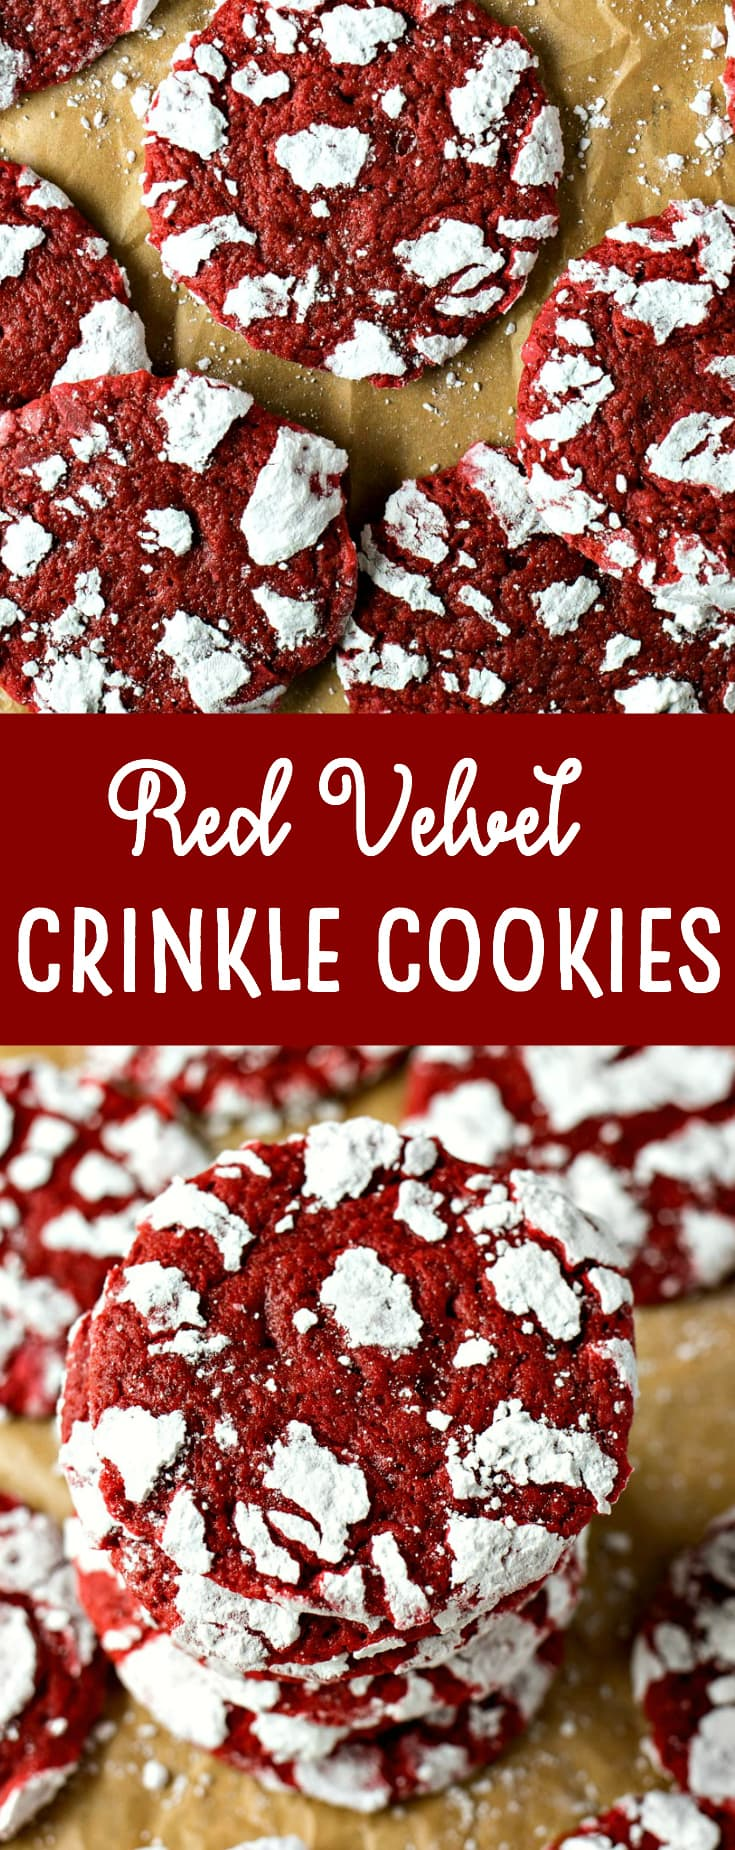 Red velvet cookie dough is rolled in powdered sugar before they're baked into chewy cookies, forming white crinkles on top.